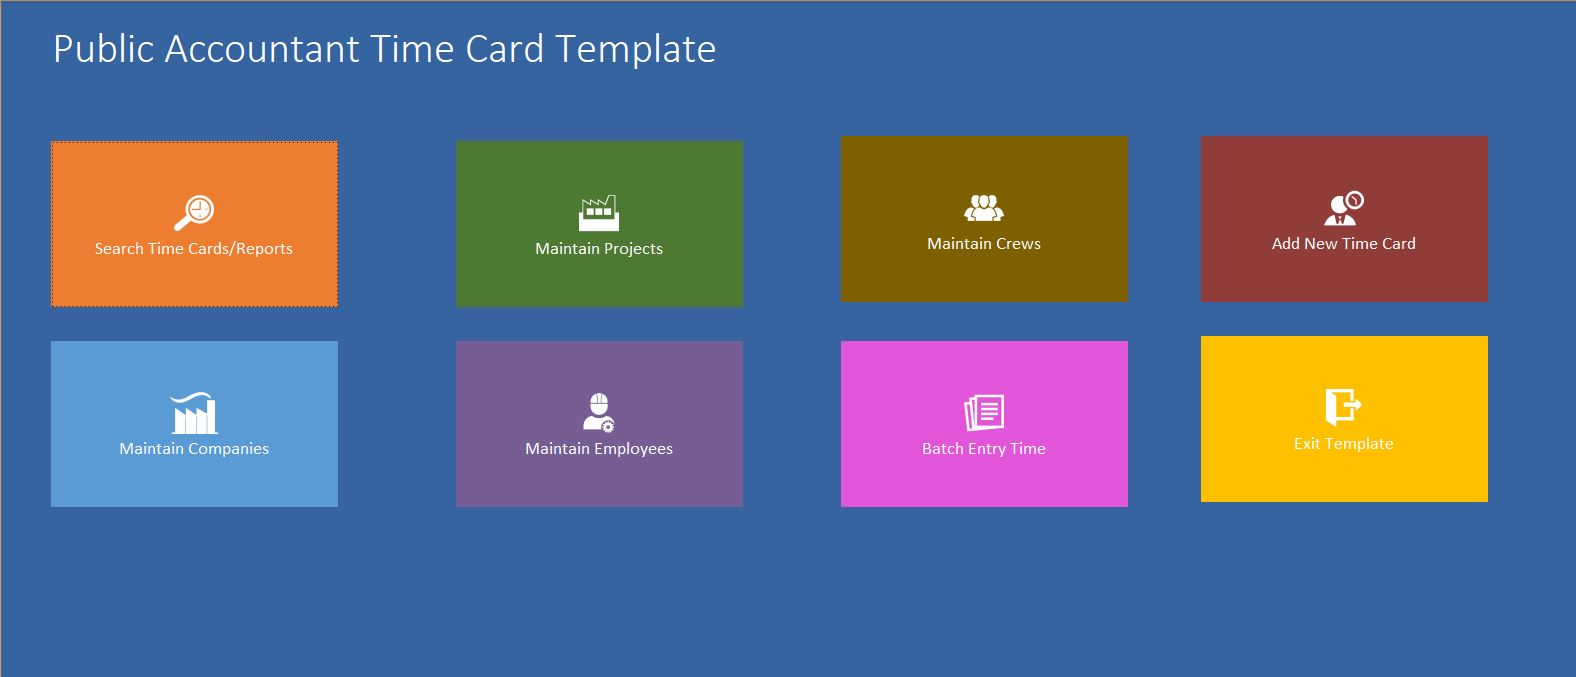 Public Accountant Time Card Template | Time Card Database